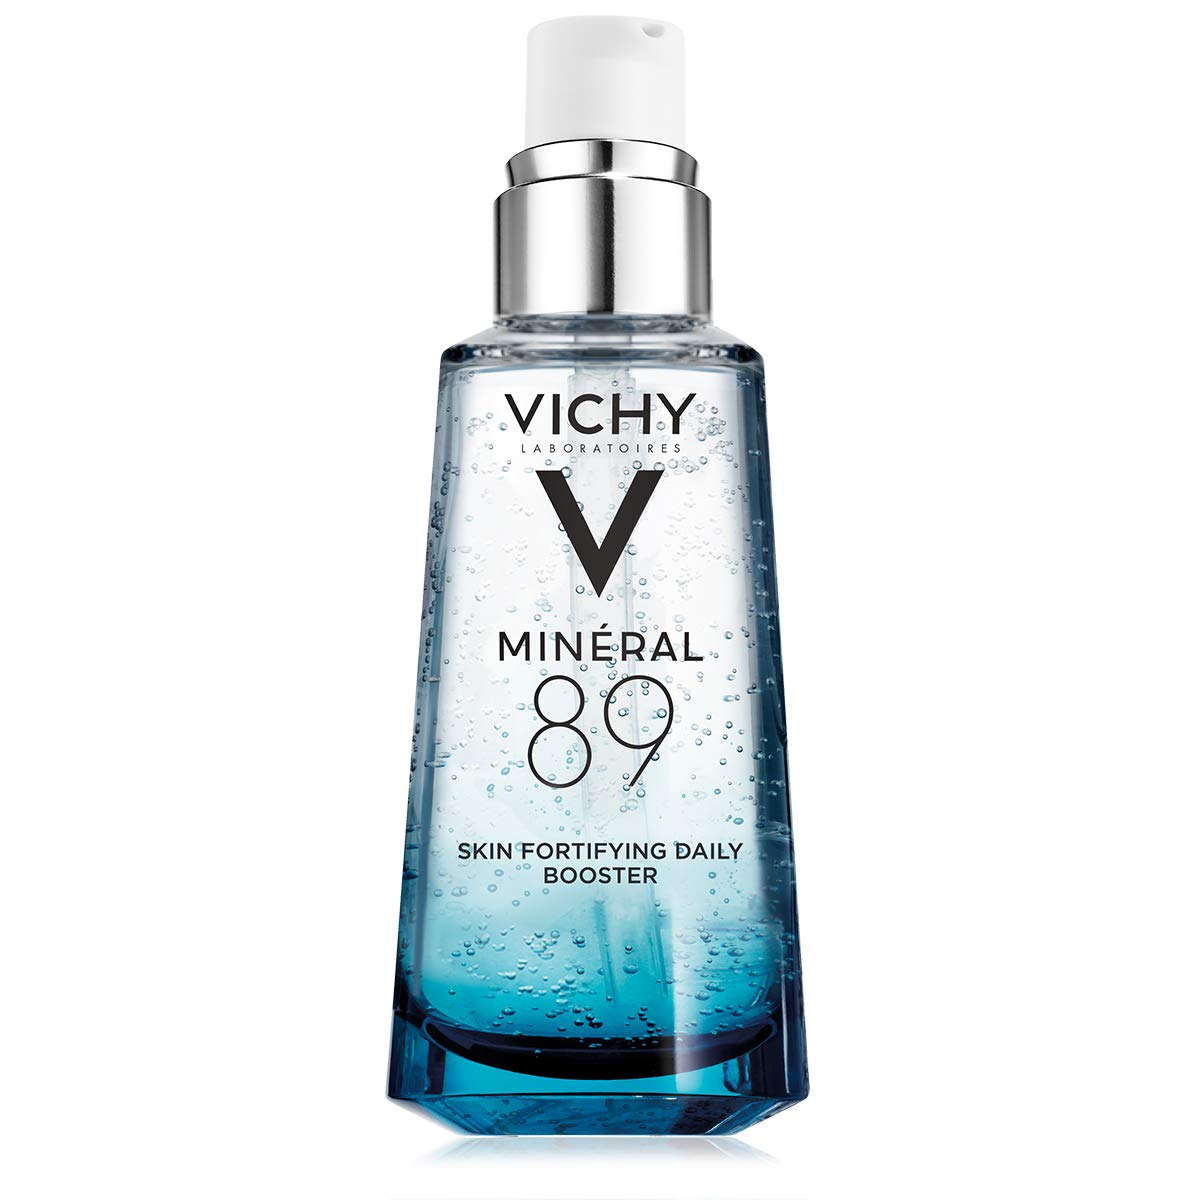 Vichy Mineral 89 Hydrating Hyaluronic Acid Serum and Daily Skin Booster, For Stronger, Healthier Looking Skin, 1.69 Fl Oz by Vichy